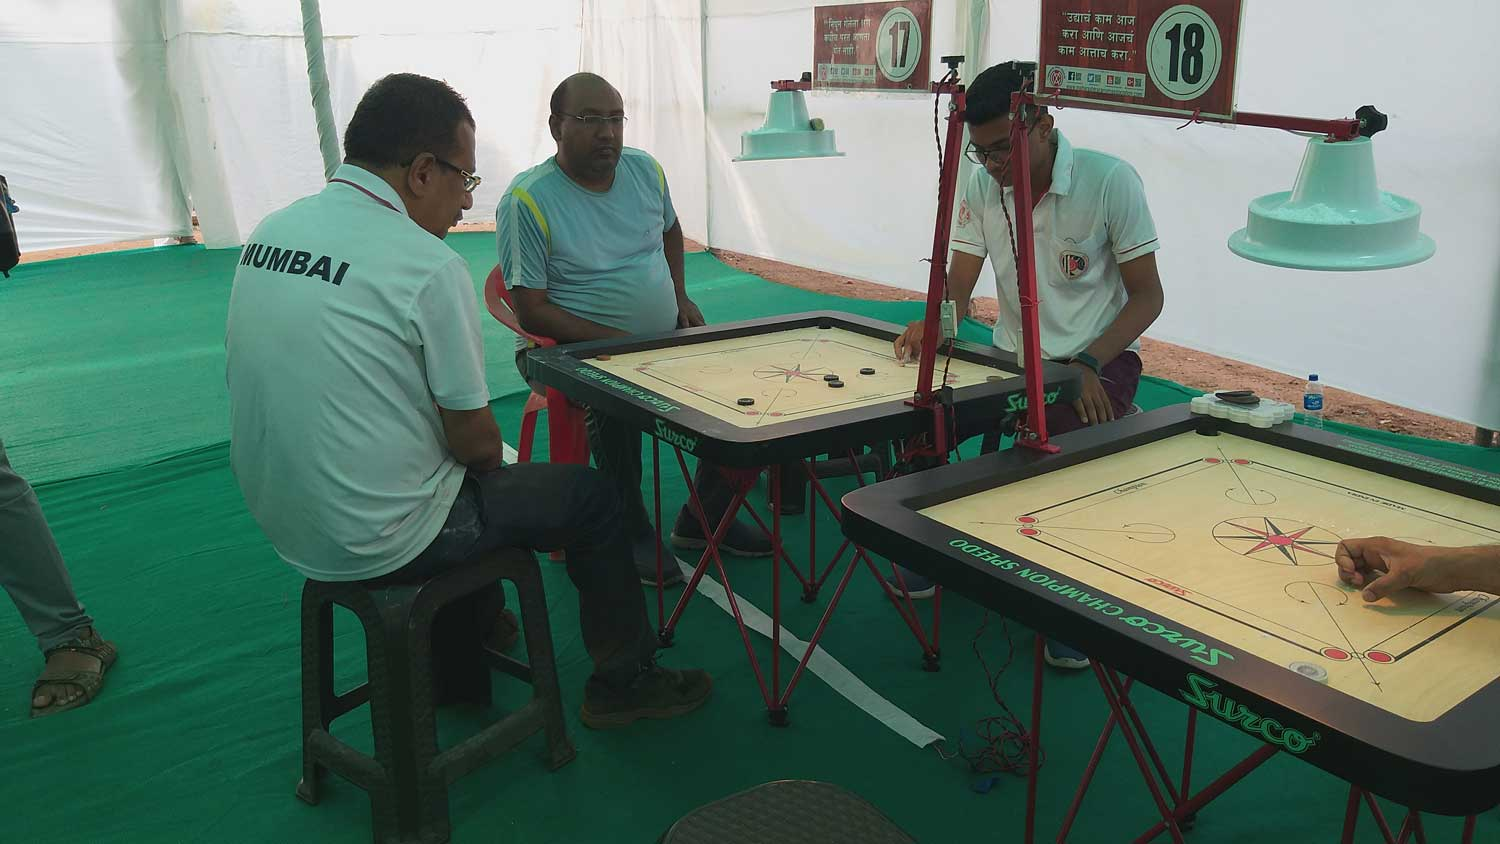 Maharashtra State Ranking Carrom Tournament 2018-2019, Vanavadi, Pune